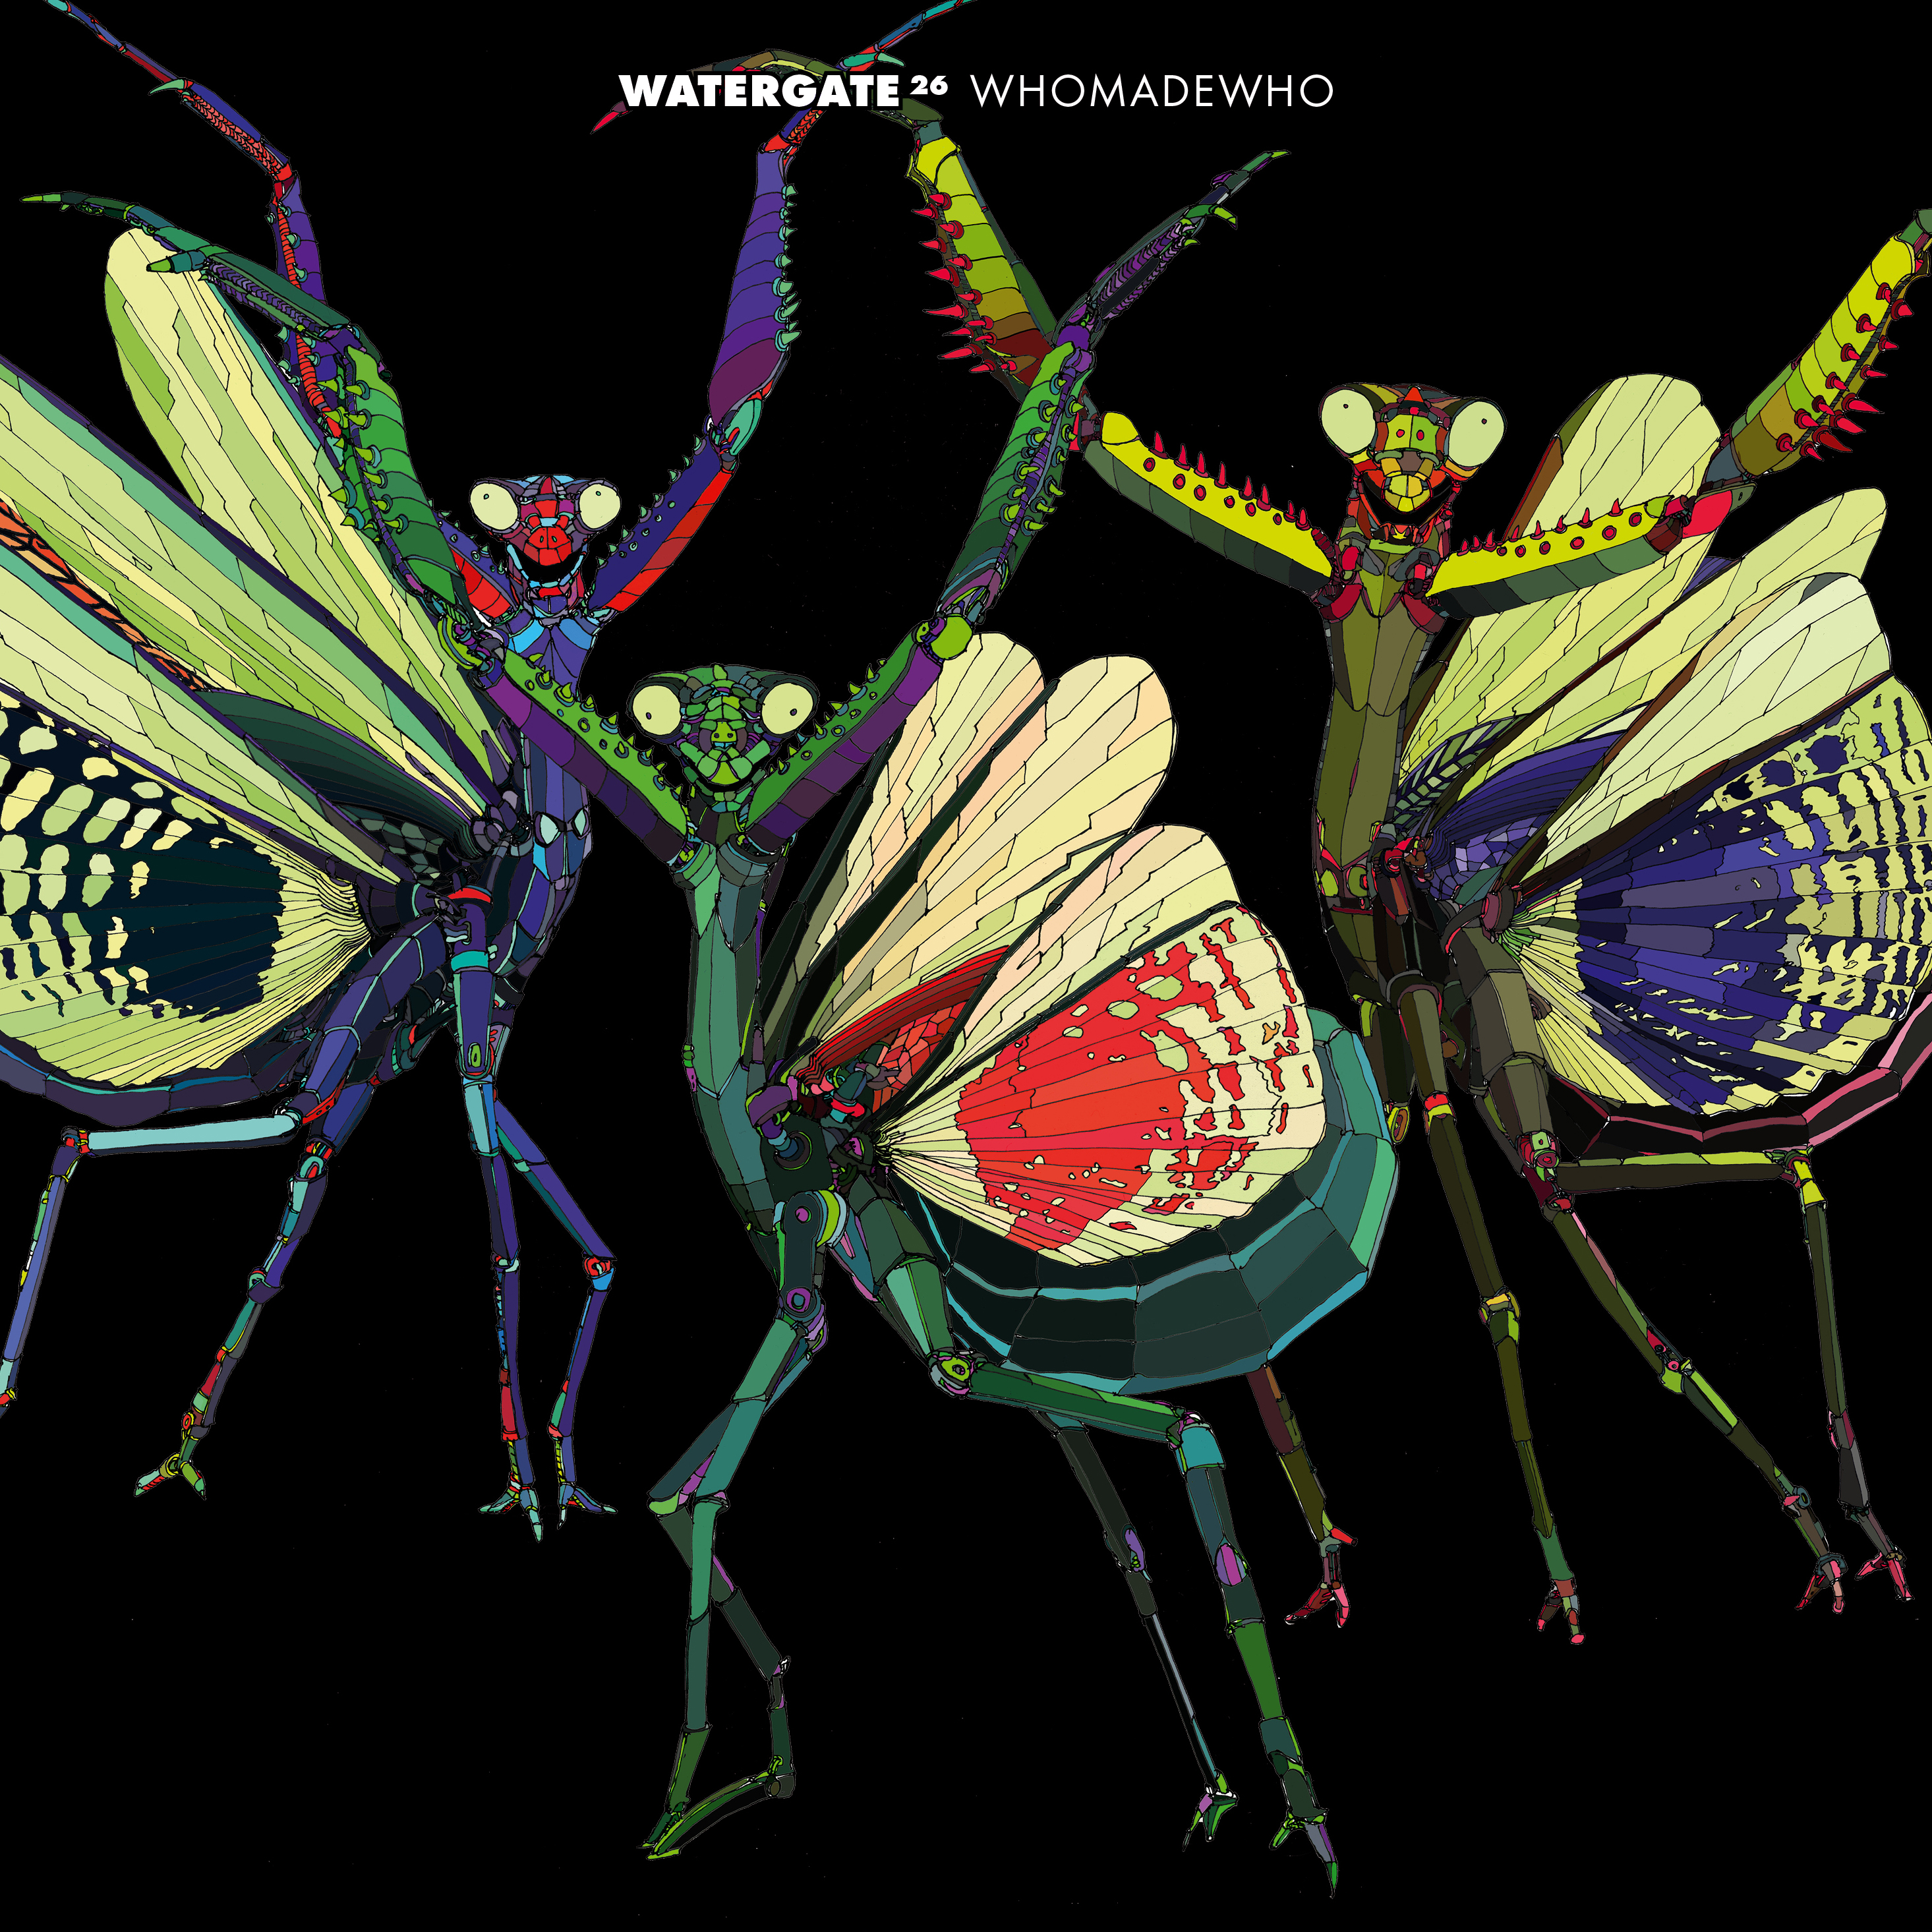 Watergate 26 mixed by WhoMadeWho